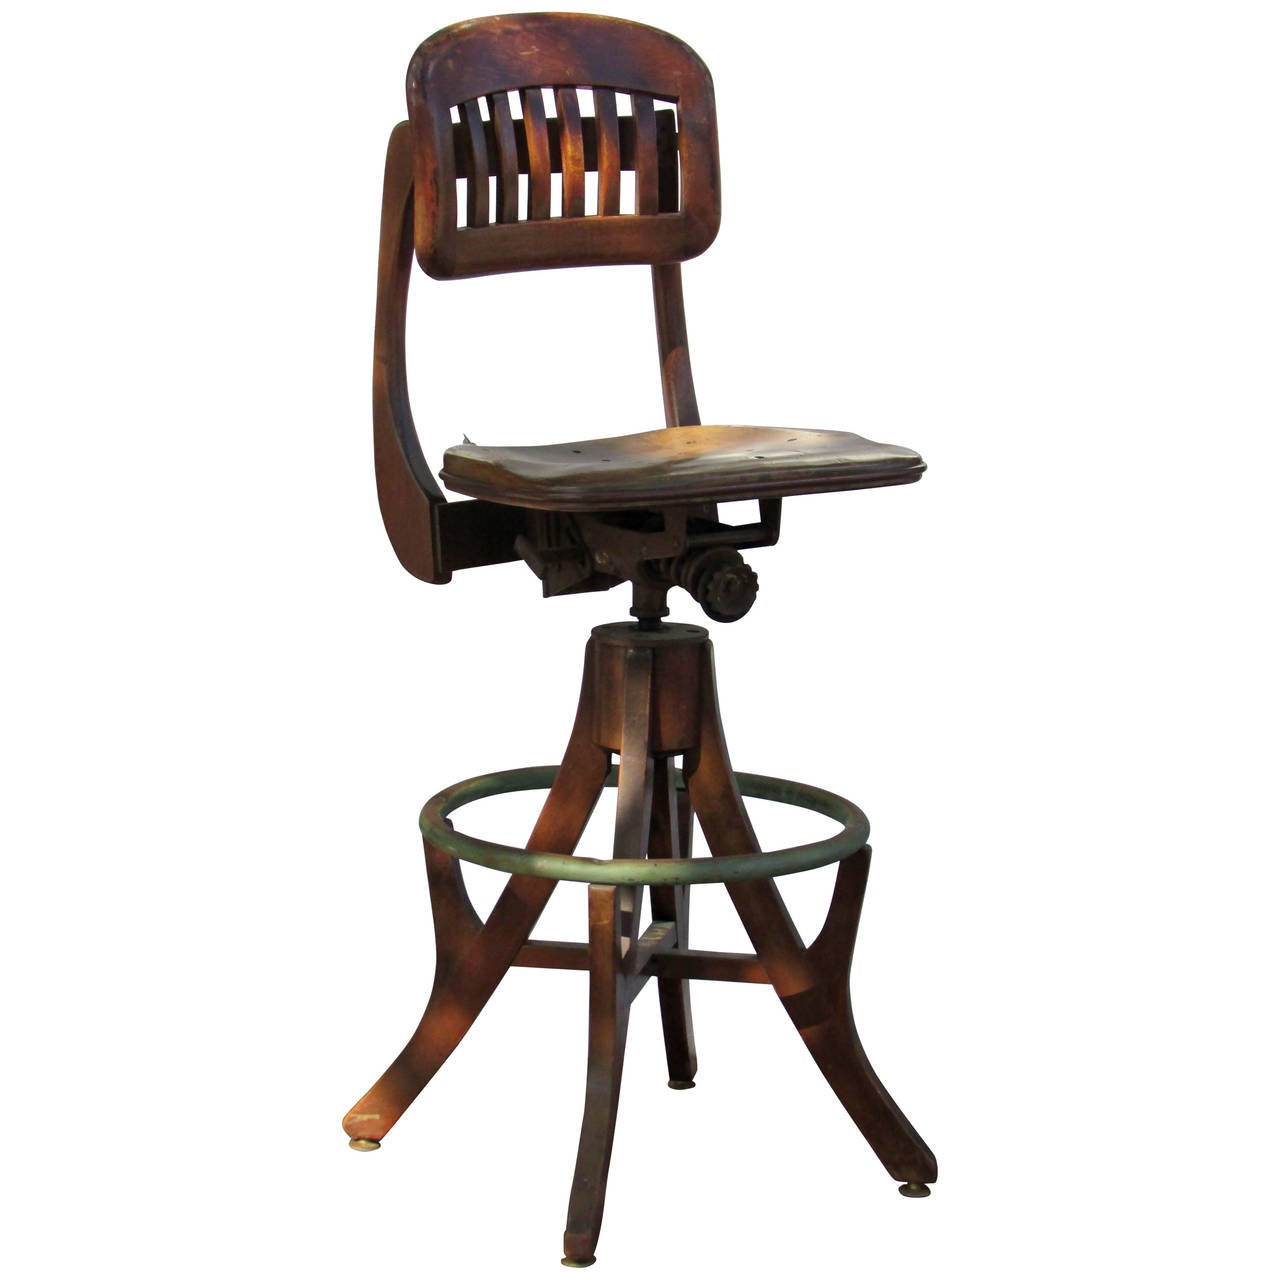 Antique American Industrial Drafting Stool 1 - Antique American Industrial Drafting Stool At 1stdibs